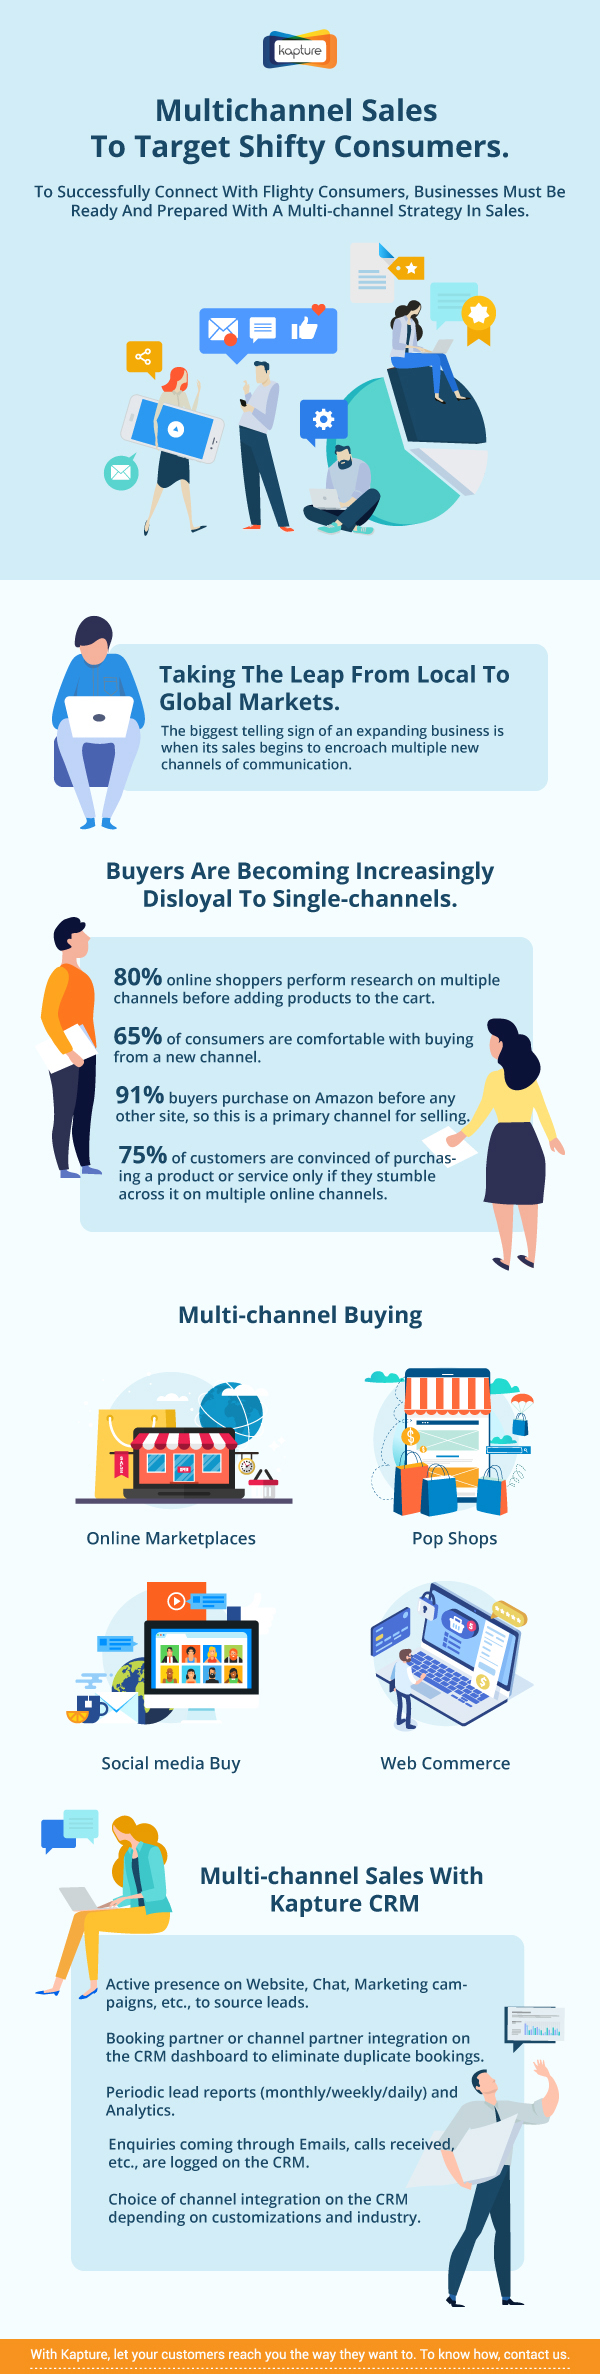 A multichannel sales CRM connects you with customers across several verticals so that you can successfully sell to a global market. Learn more about multichannel sales in this infographic.